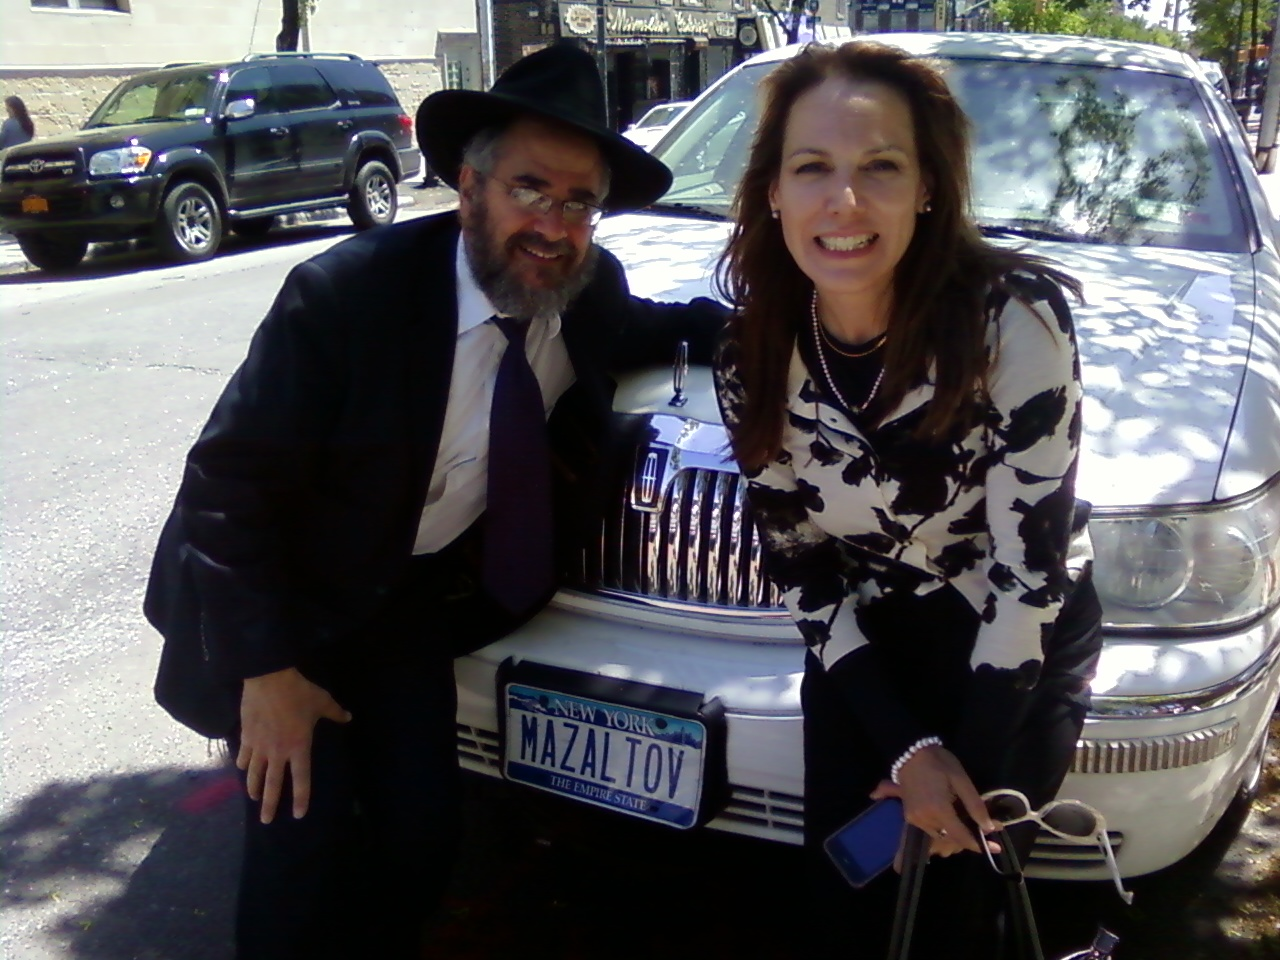 given jewish dating site Dating forum success stories contact 10 best jewish dating sites diversidad 2016-04-06t17:26:34+00:00.